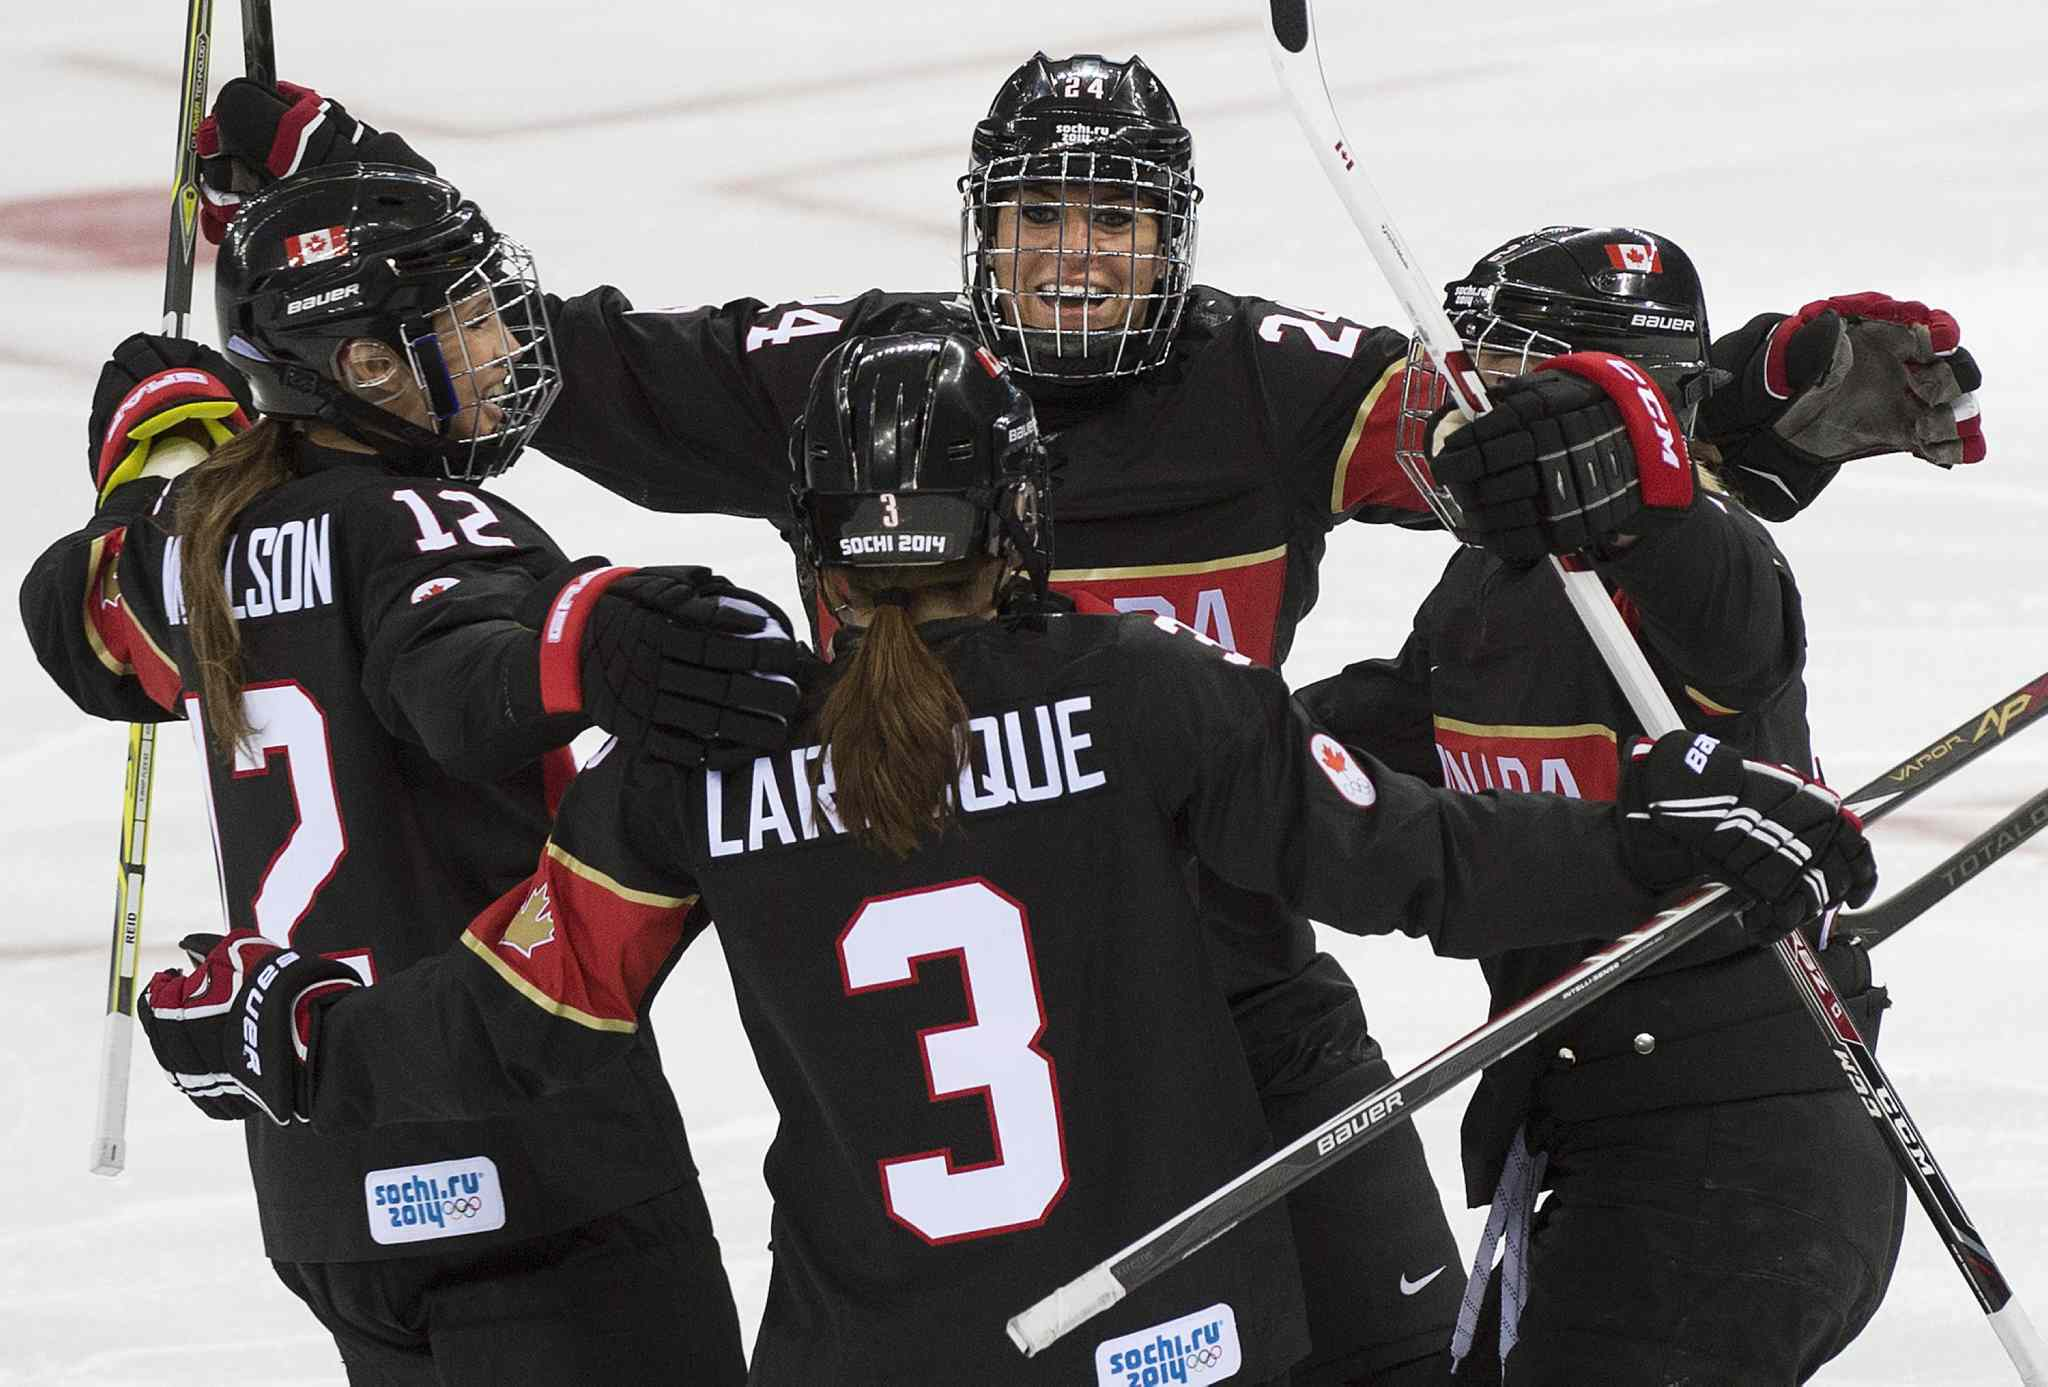 Canada defenceman Jocelyne Larocque (3) celebrates her goal with Canada forward Natalie Spooner, centre, and teammates while playing against Switzerland during first period women's Olympic hockey action at the 2014 Sochi Winter Olympics in Sochi, Russia on Saturday.